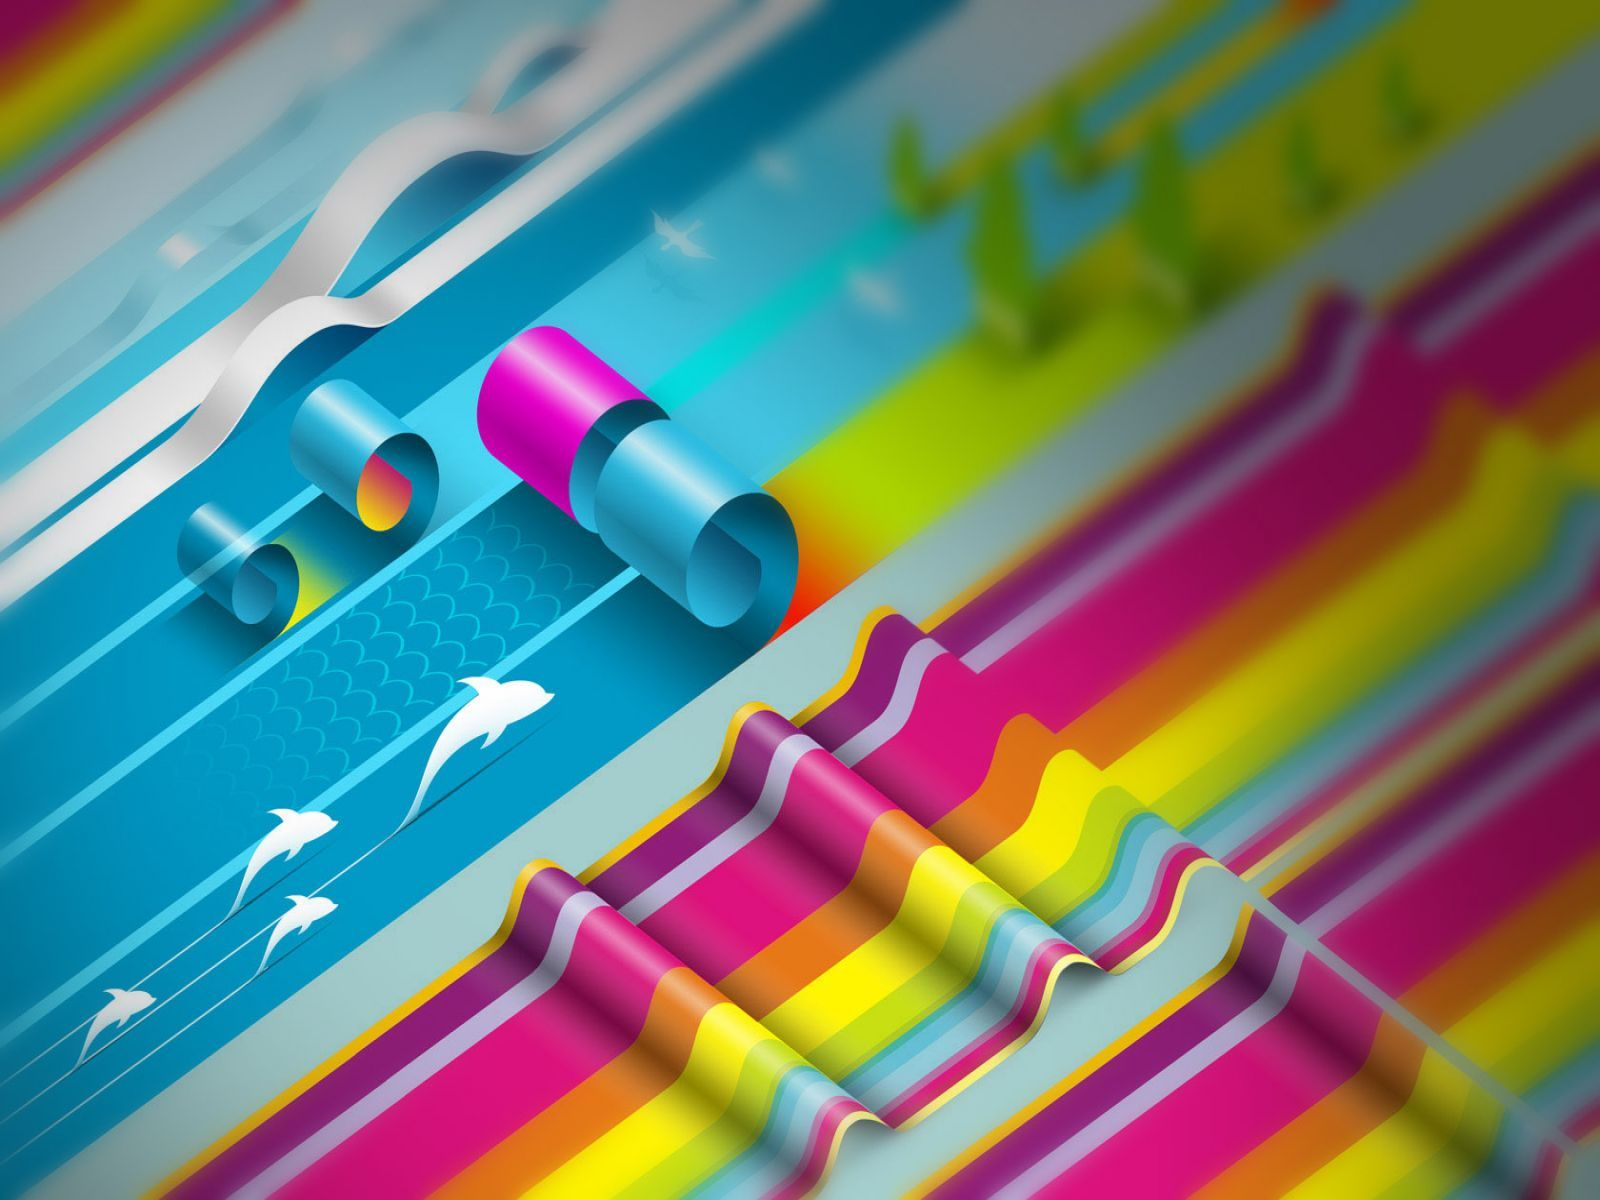 3D Colorful Creative design Wallpapers.